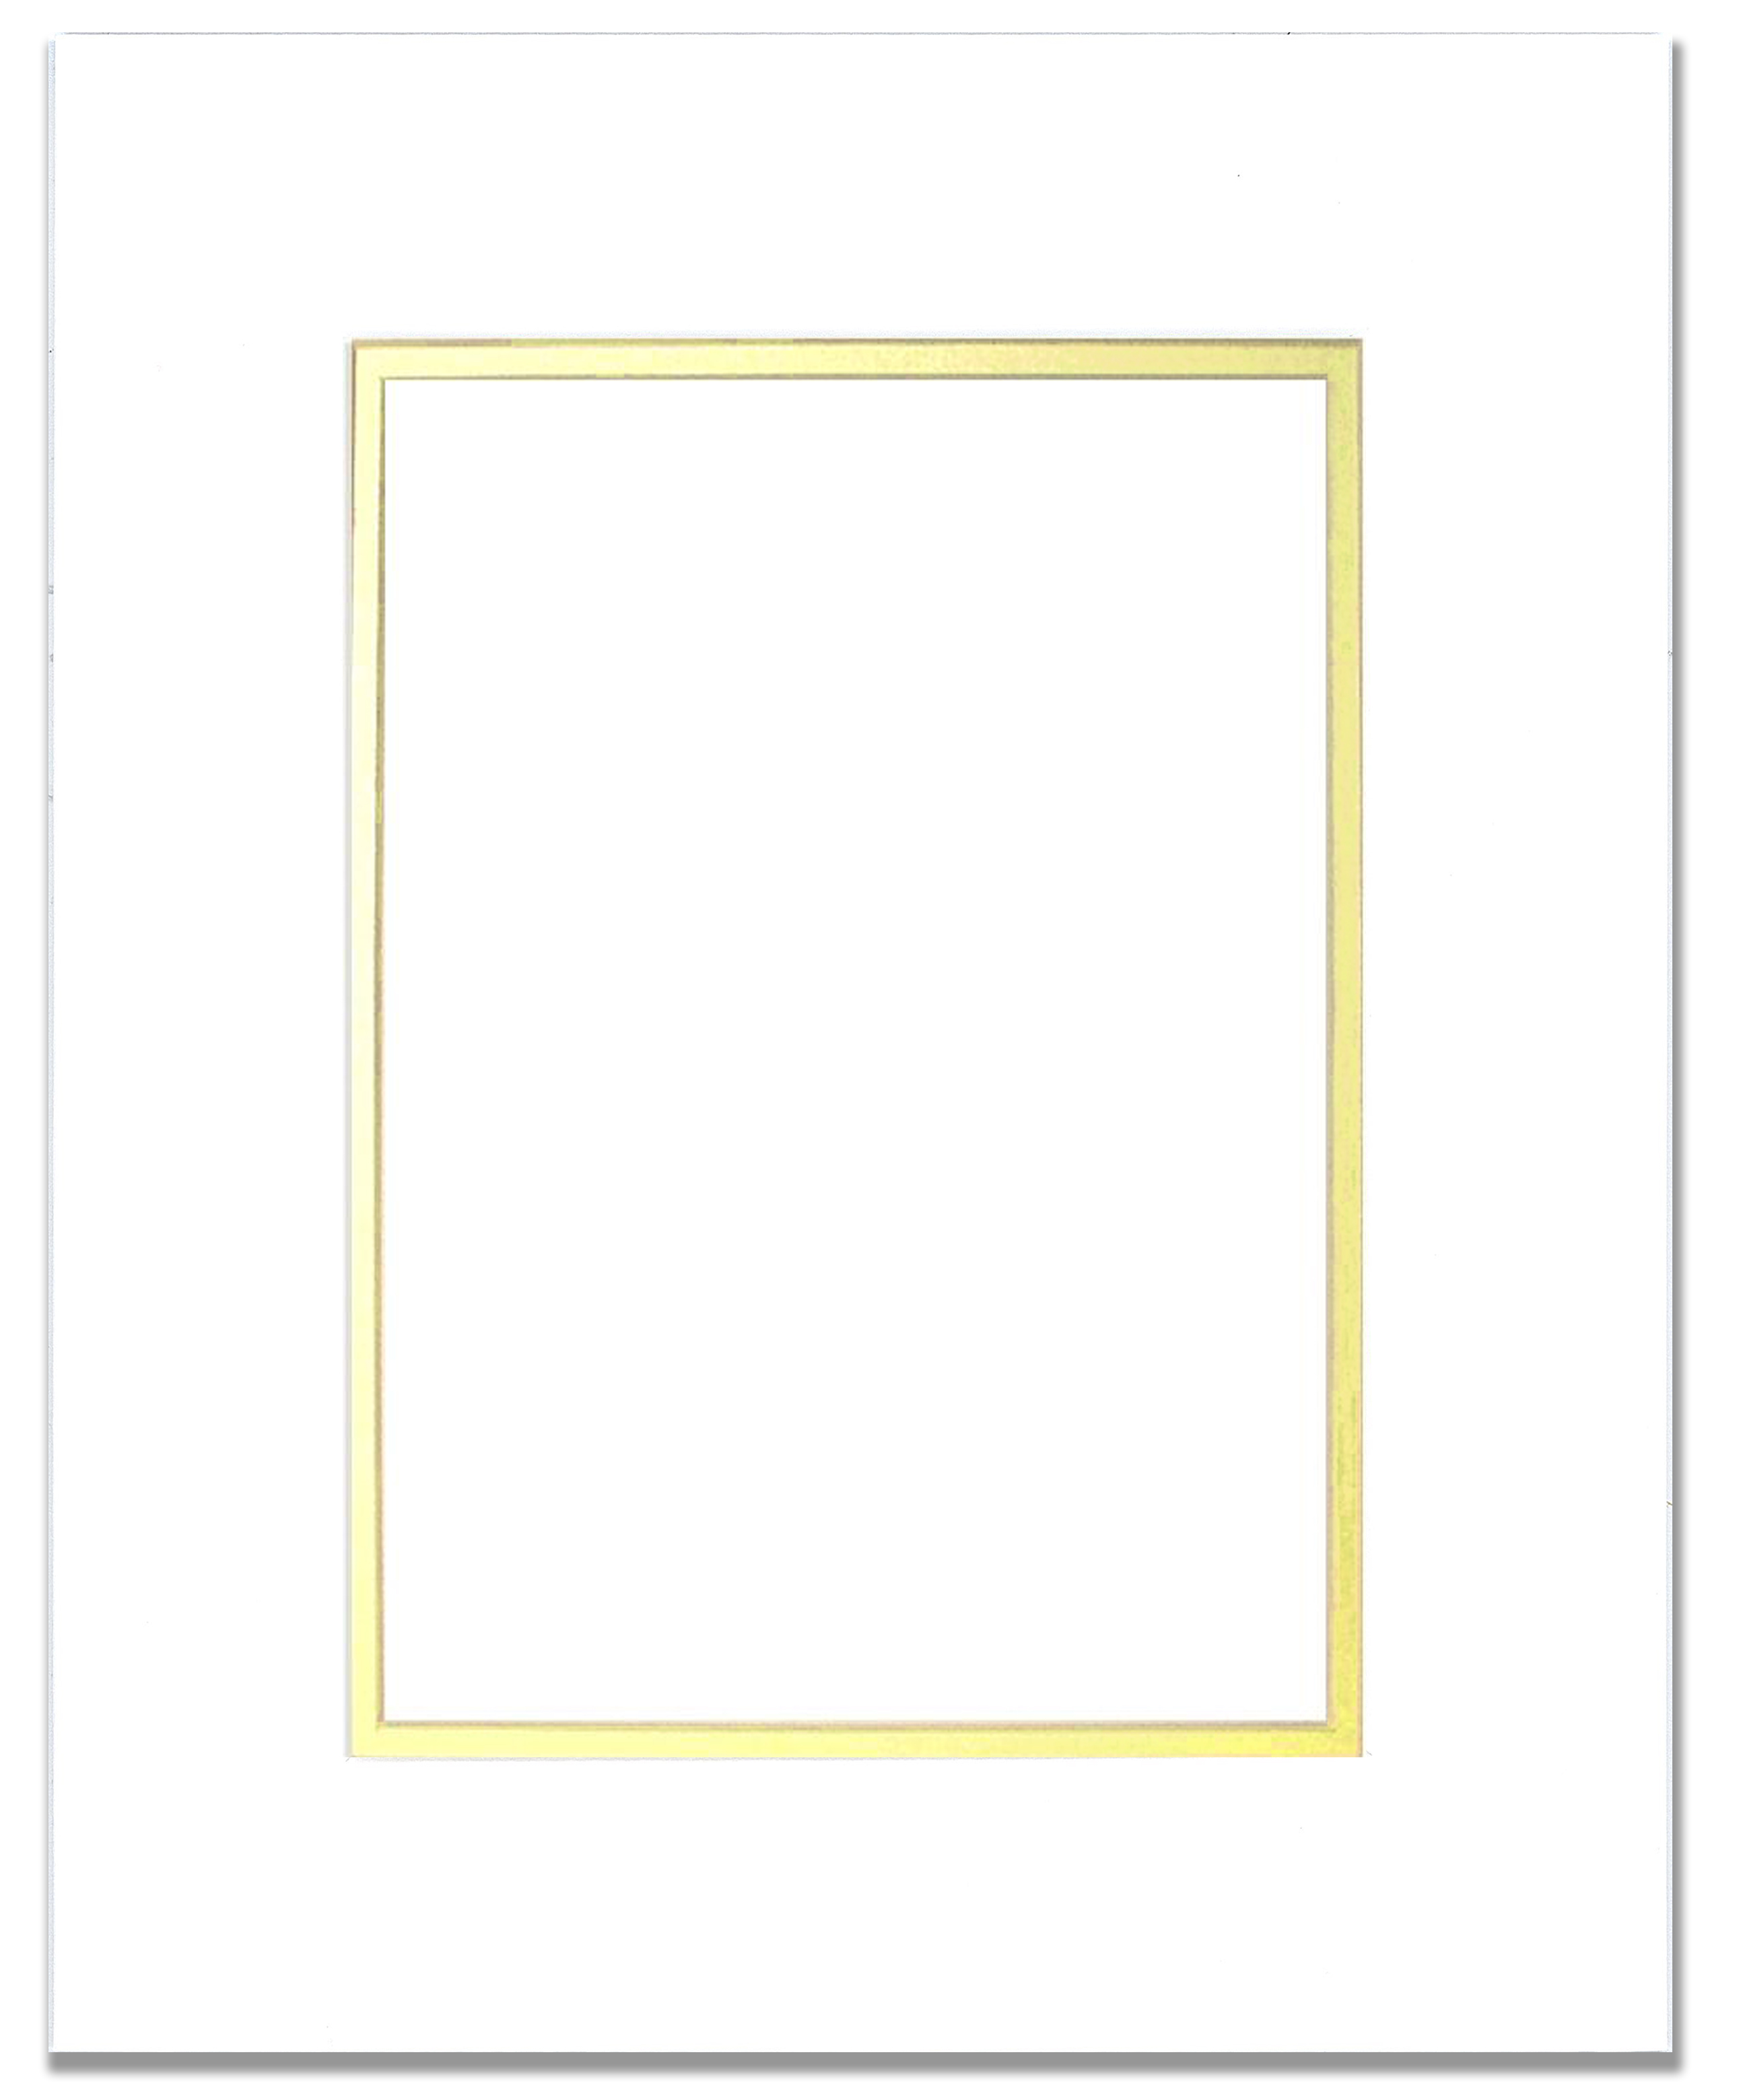 board cutter picture with mat nz mats mount x wholesale frame photo framing frames